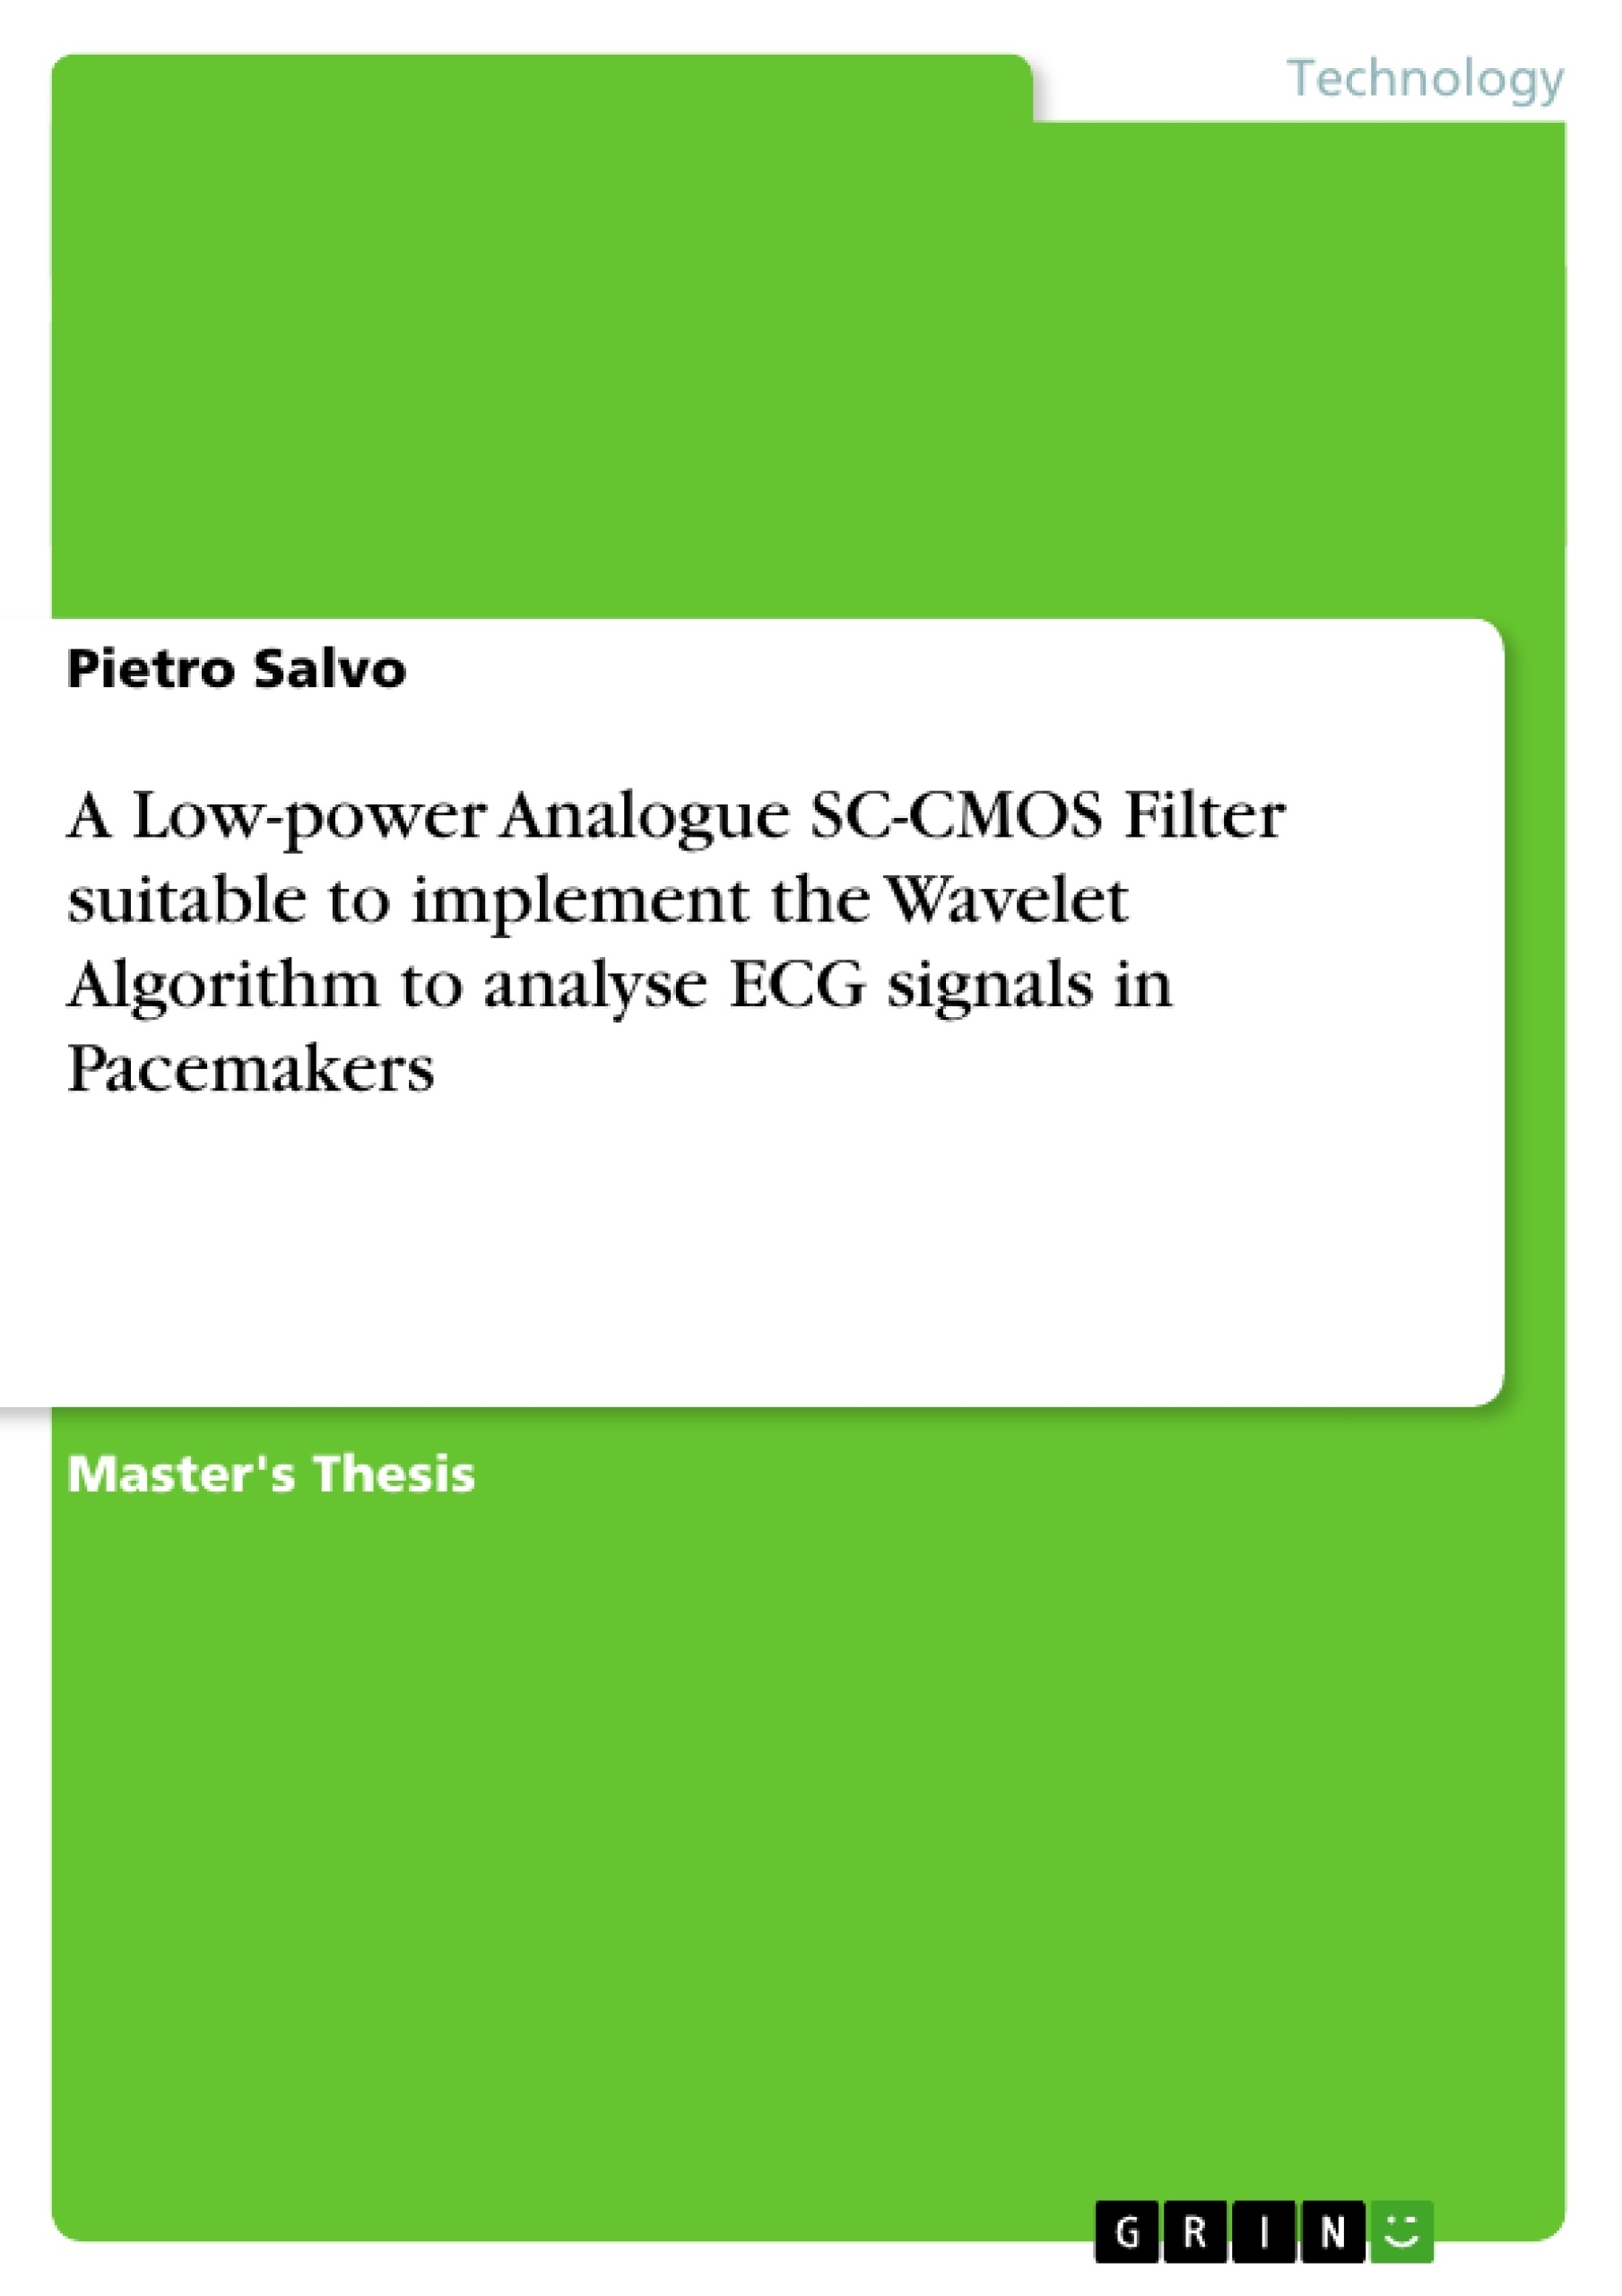 Title: A Low-power Analogue SC-CMOS Filter suitable to implement the Wavelet Algorithm to analyse ECG signals in Pacemakers